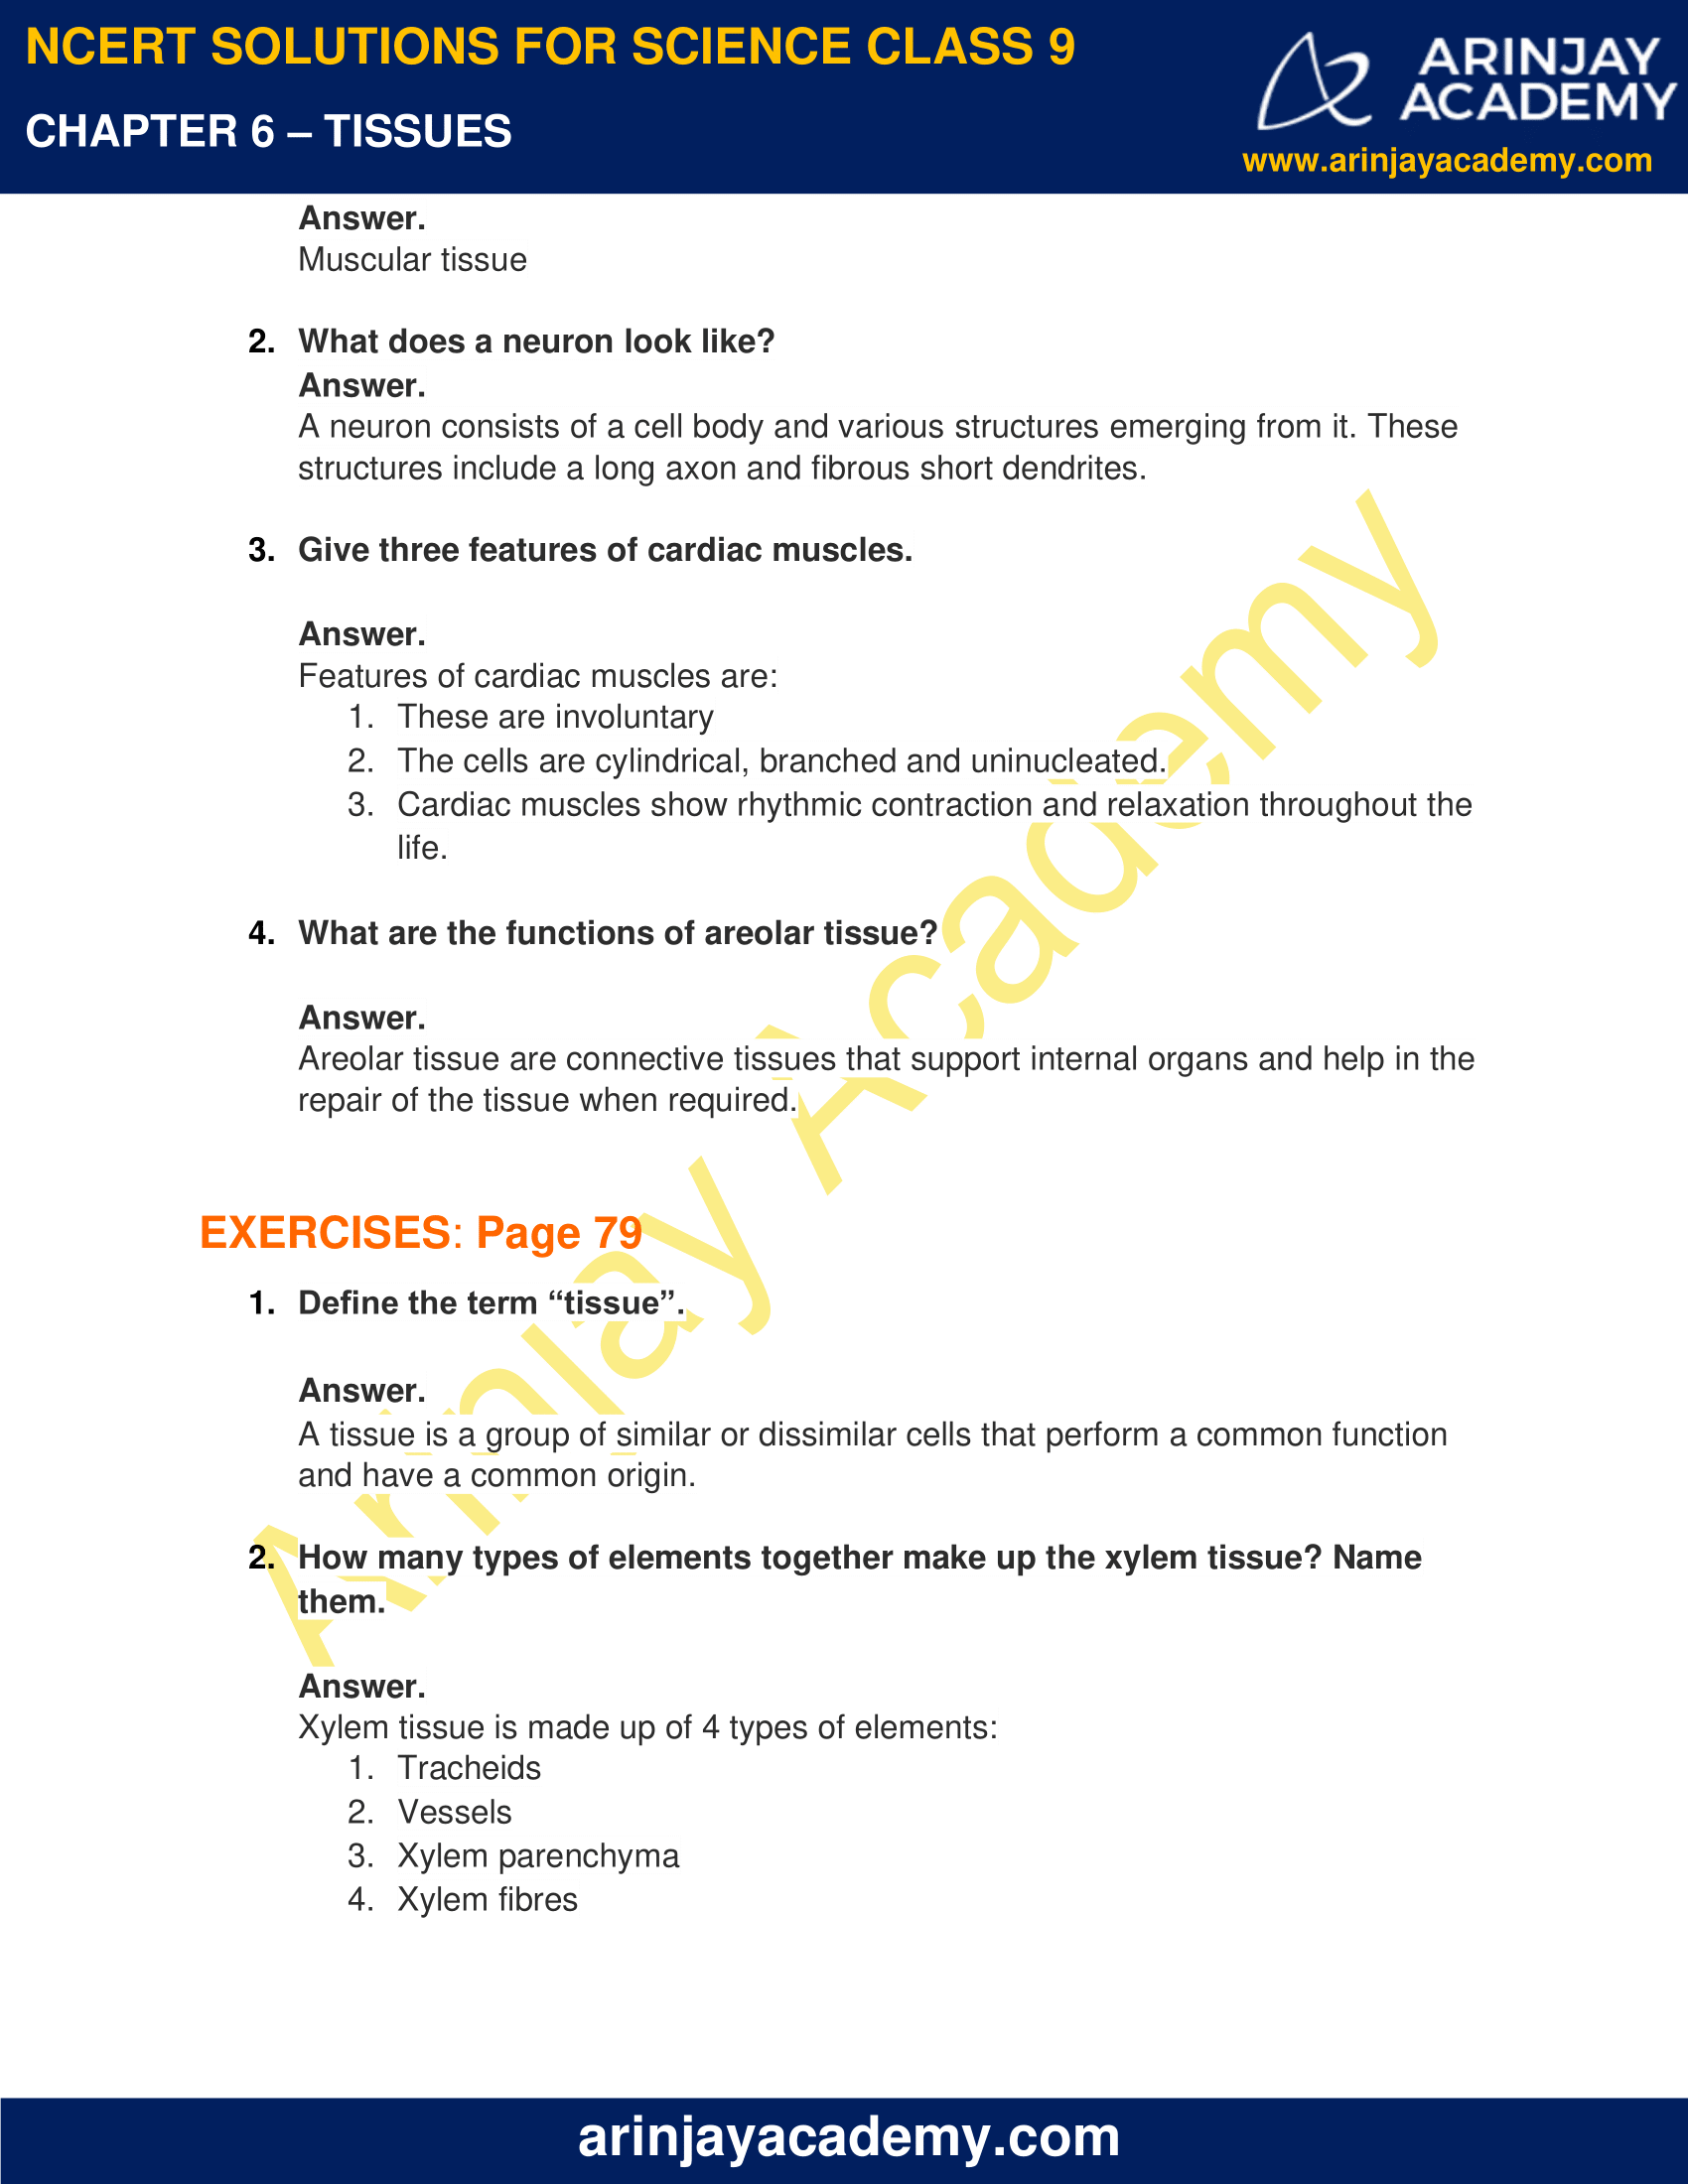 NCERT Solutions for Class 9 Science Chapter 6 - Tissues image 2